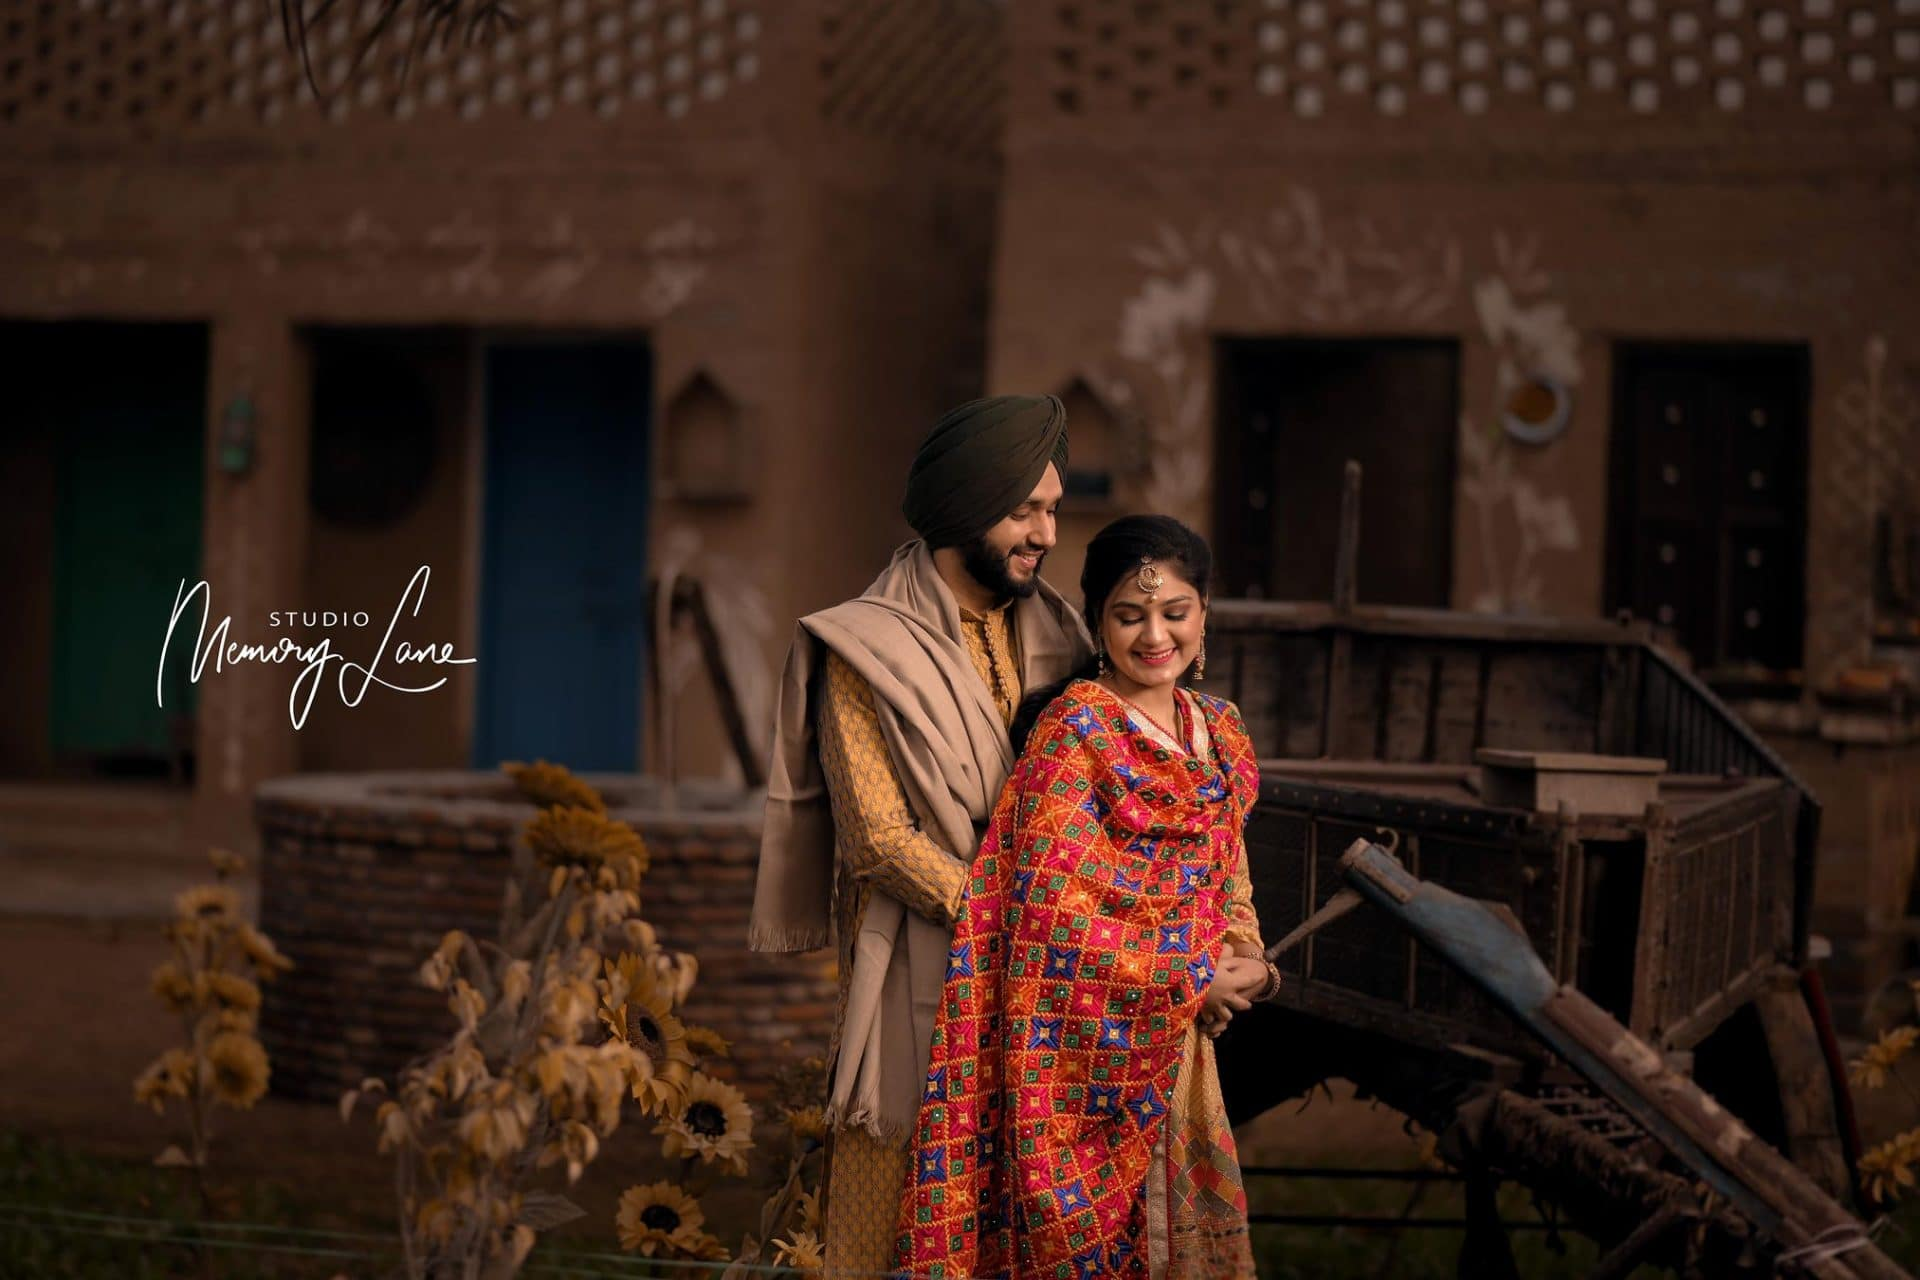 Pre wedding photography in Chandigarh |   Jigar da tukda!